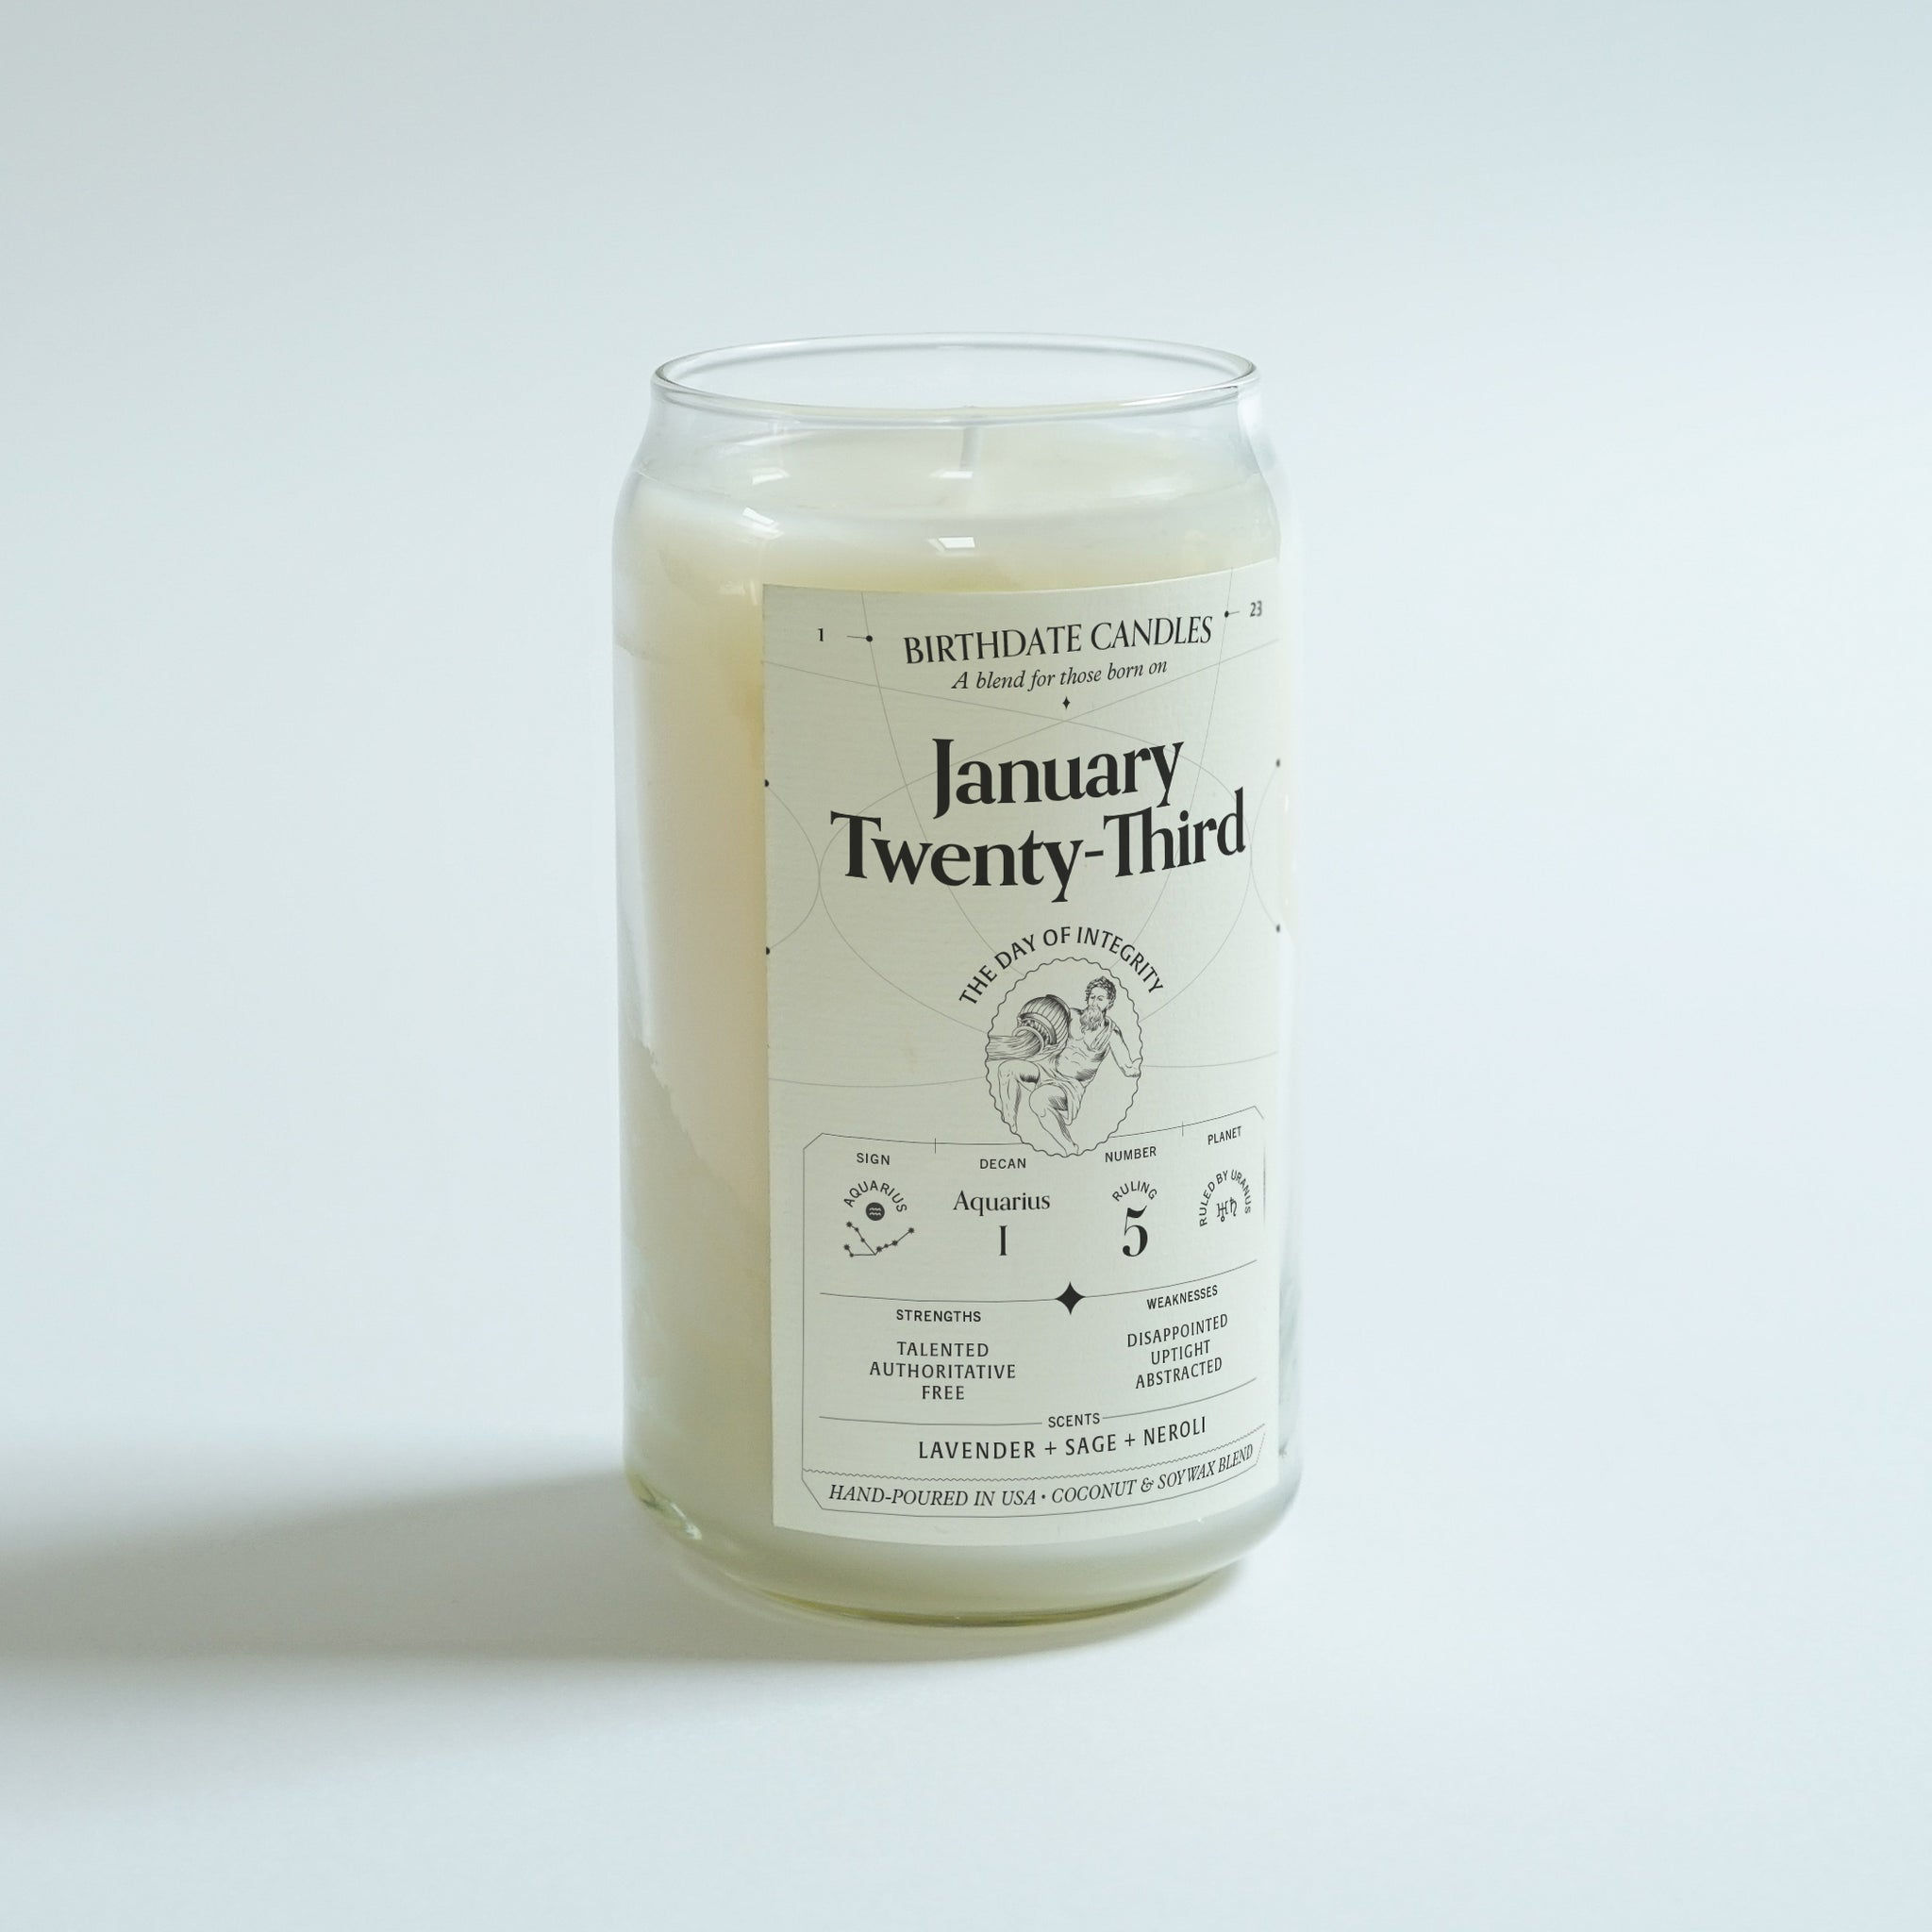 The January Twenty-Third Birthday Candle